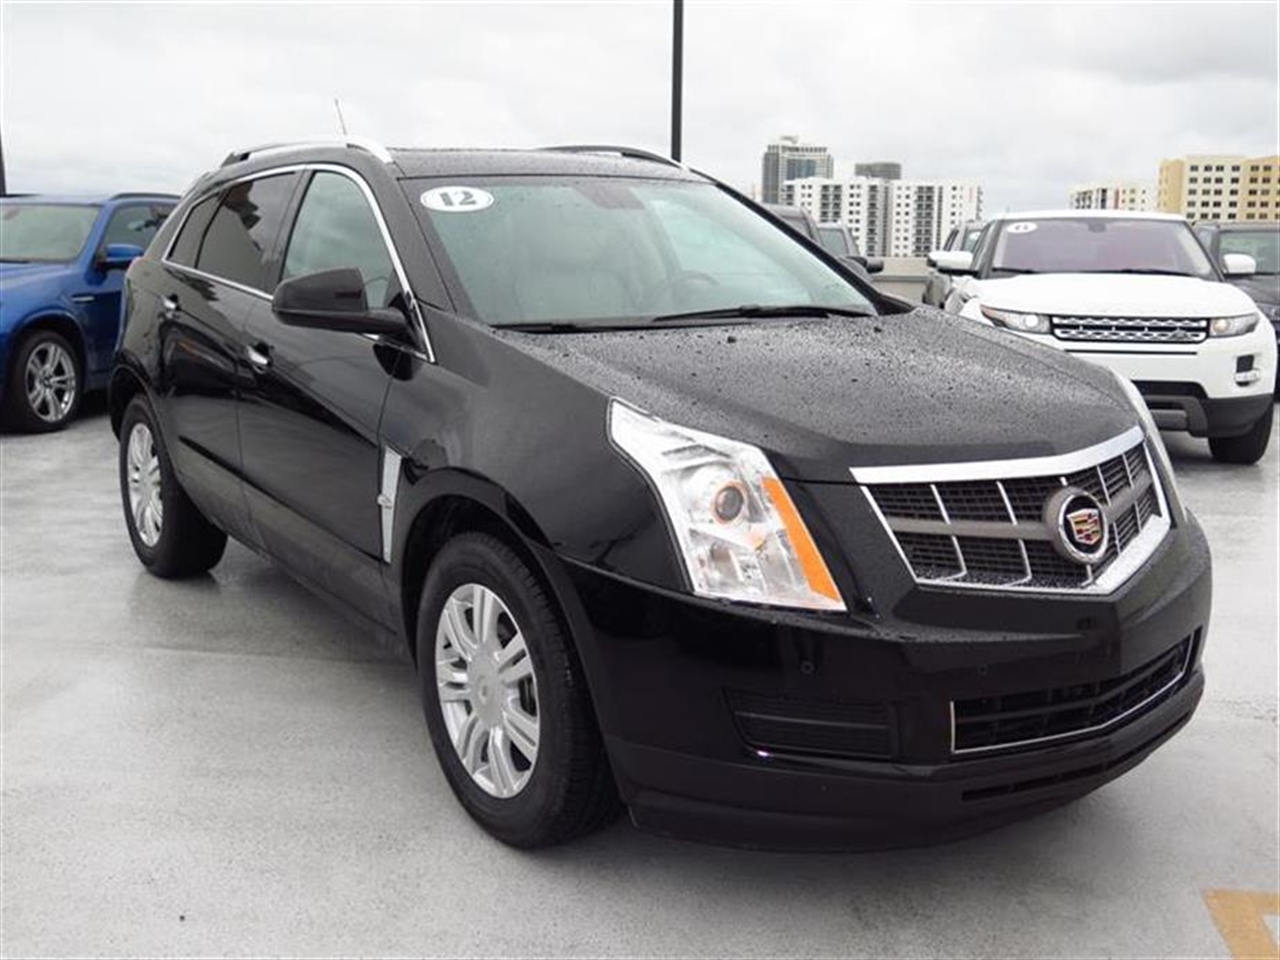 2012 CADILLAC SRX FWD 4dr Luxury Collection 28225 miles Adaptive Remote Start Armrest front cen